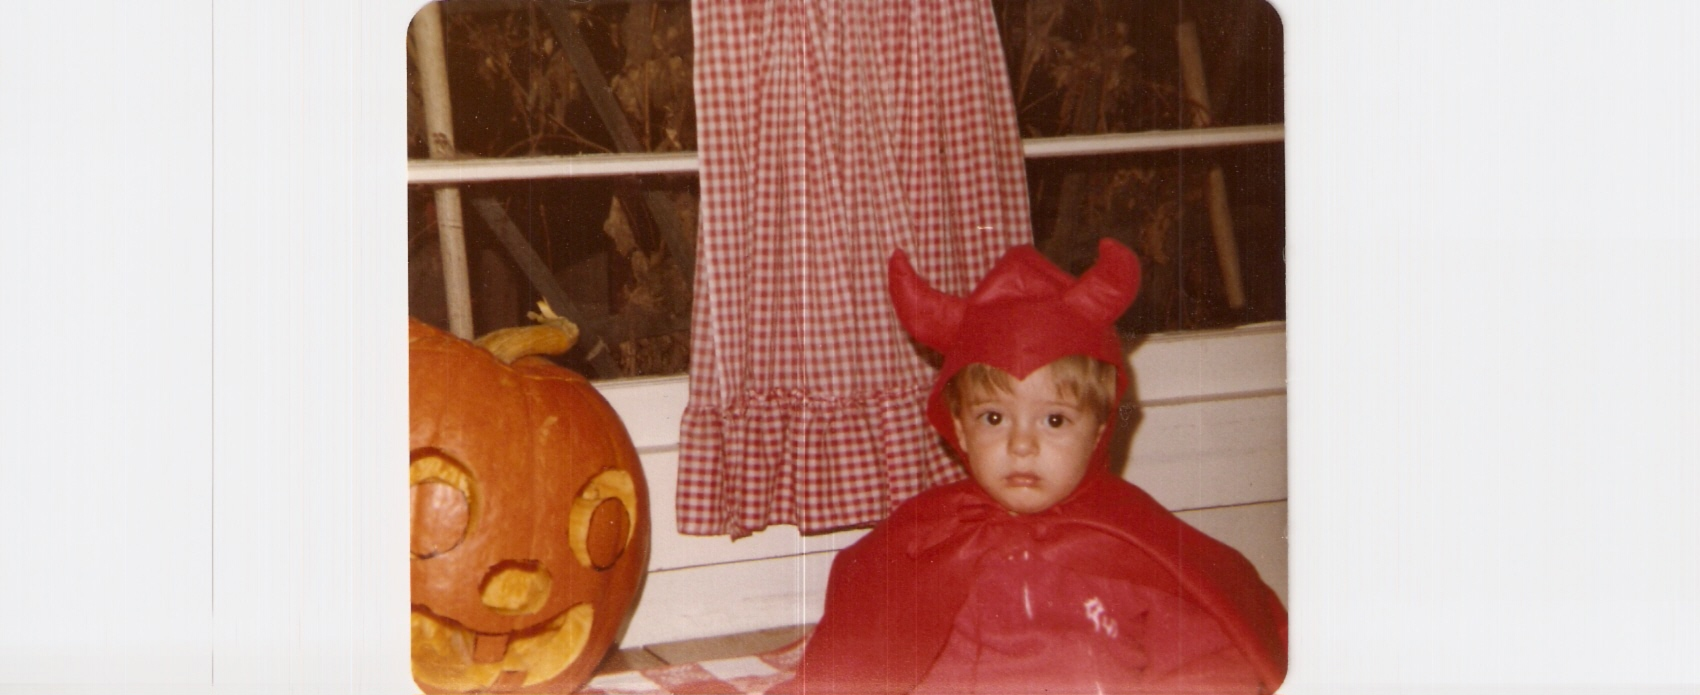 Me in a devil costume, published as part of